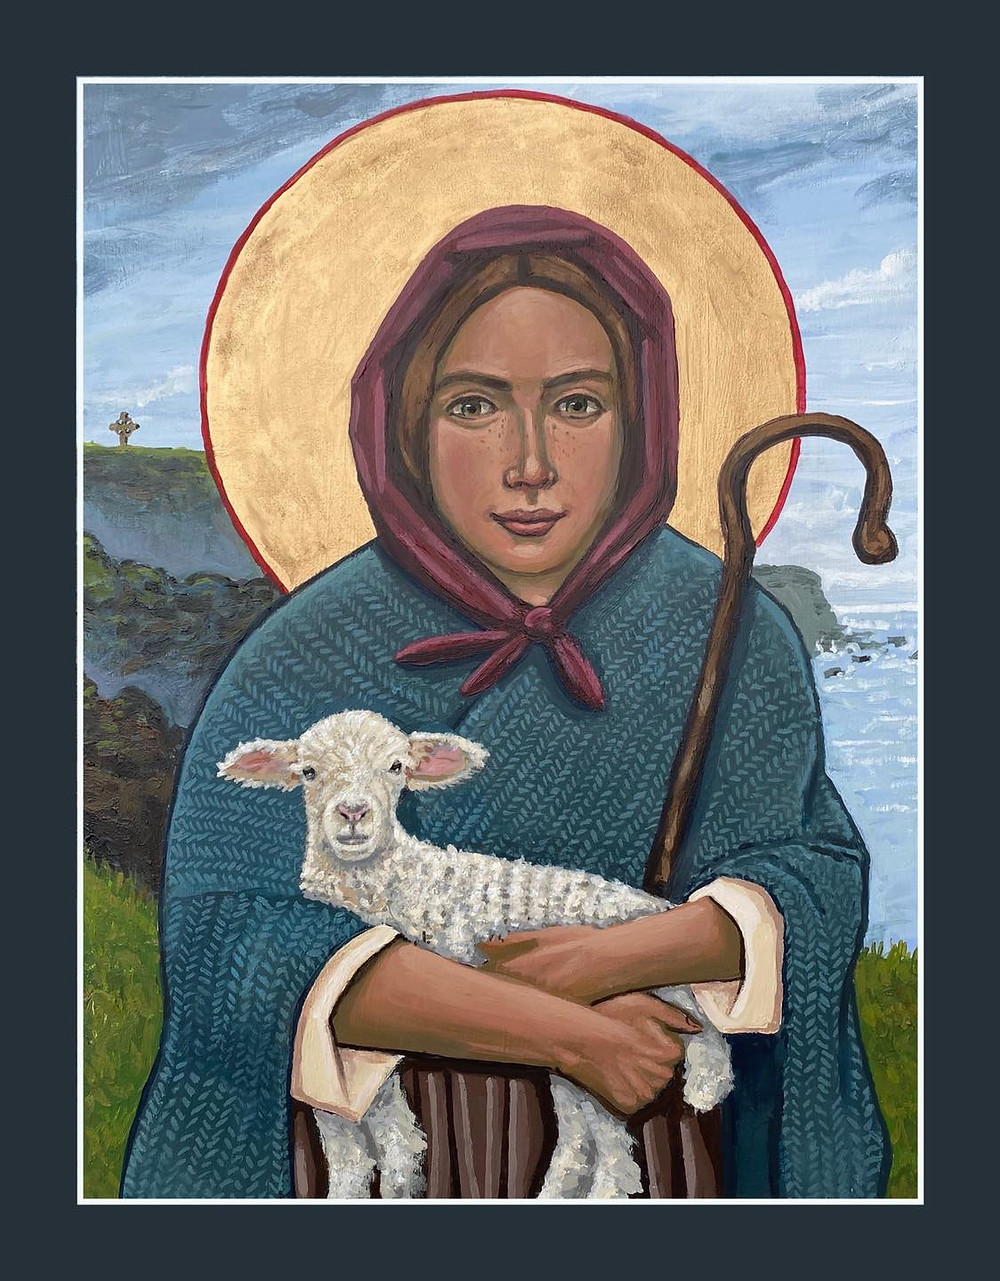 This Icon is for the Priests, spiritual directors, counselors, elders, deacons, nuns, God-parents, Mothers, and Sisters; it is for all of the women who have guided me on my journey.  This icon was commissioned by Rev. Sharon Swanson for her Daughter. The Shepherdess stands on the cliff faced shore of Shetland Scotland.  Prints available @ kellylatimoreicons.com  #iconography #womenshistorymonth #womenshistorymonth2021 #thegoodshepherd #thegoodshepherdess